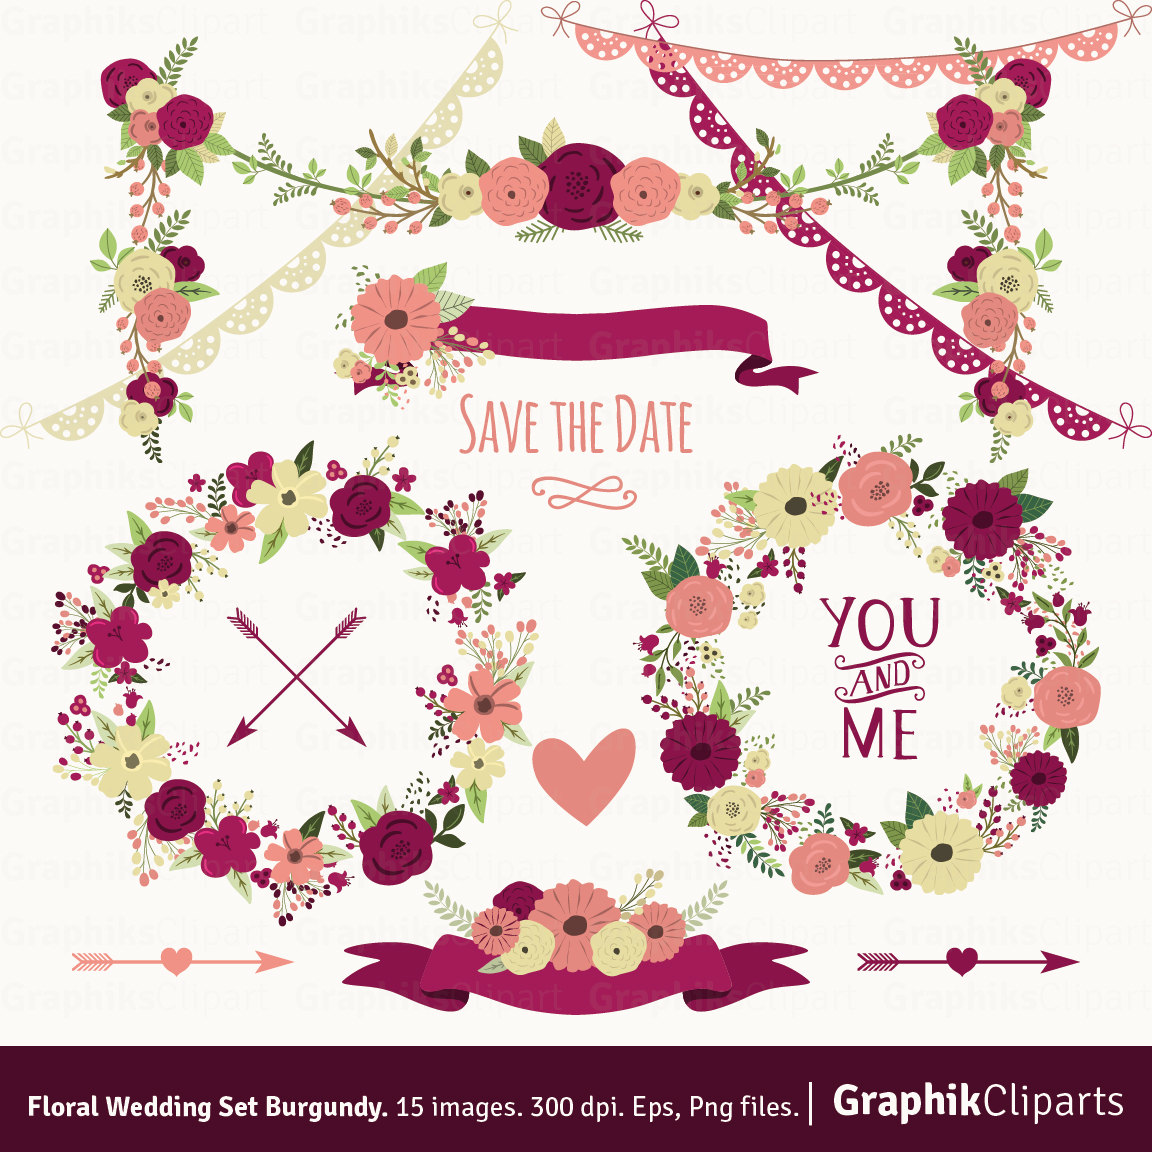 Floral clipart flower garland WEDDING Floral Wedding 300 dpi